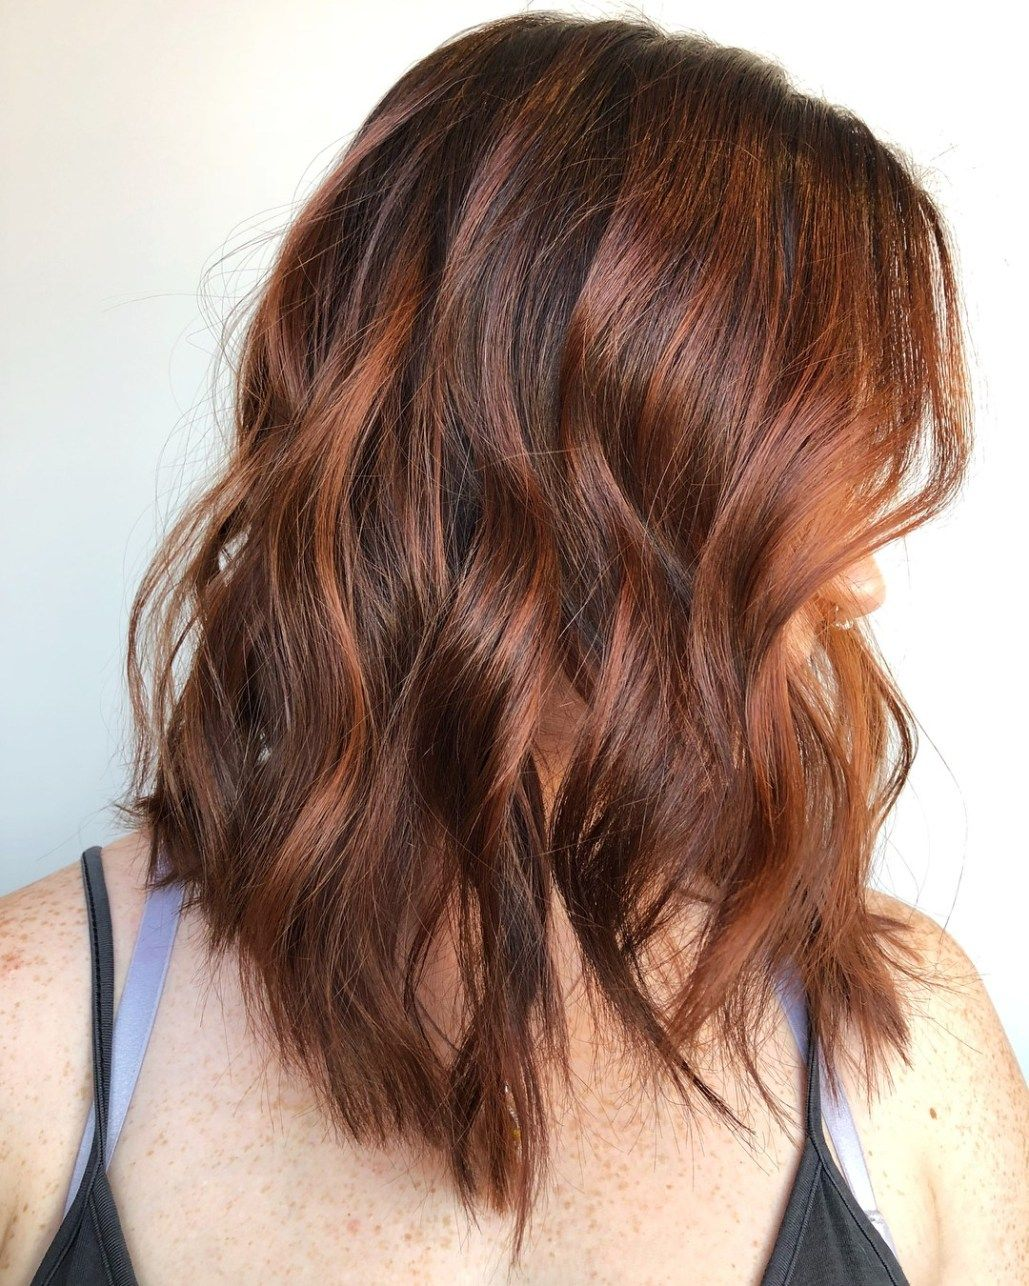 50 Trendy Brown Hair Colors and Brunette Hairstyles for 2020 - Hair Adviser